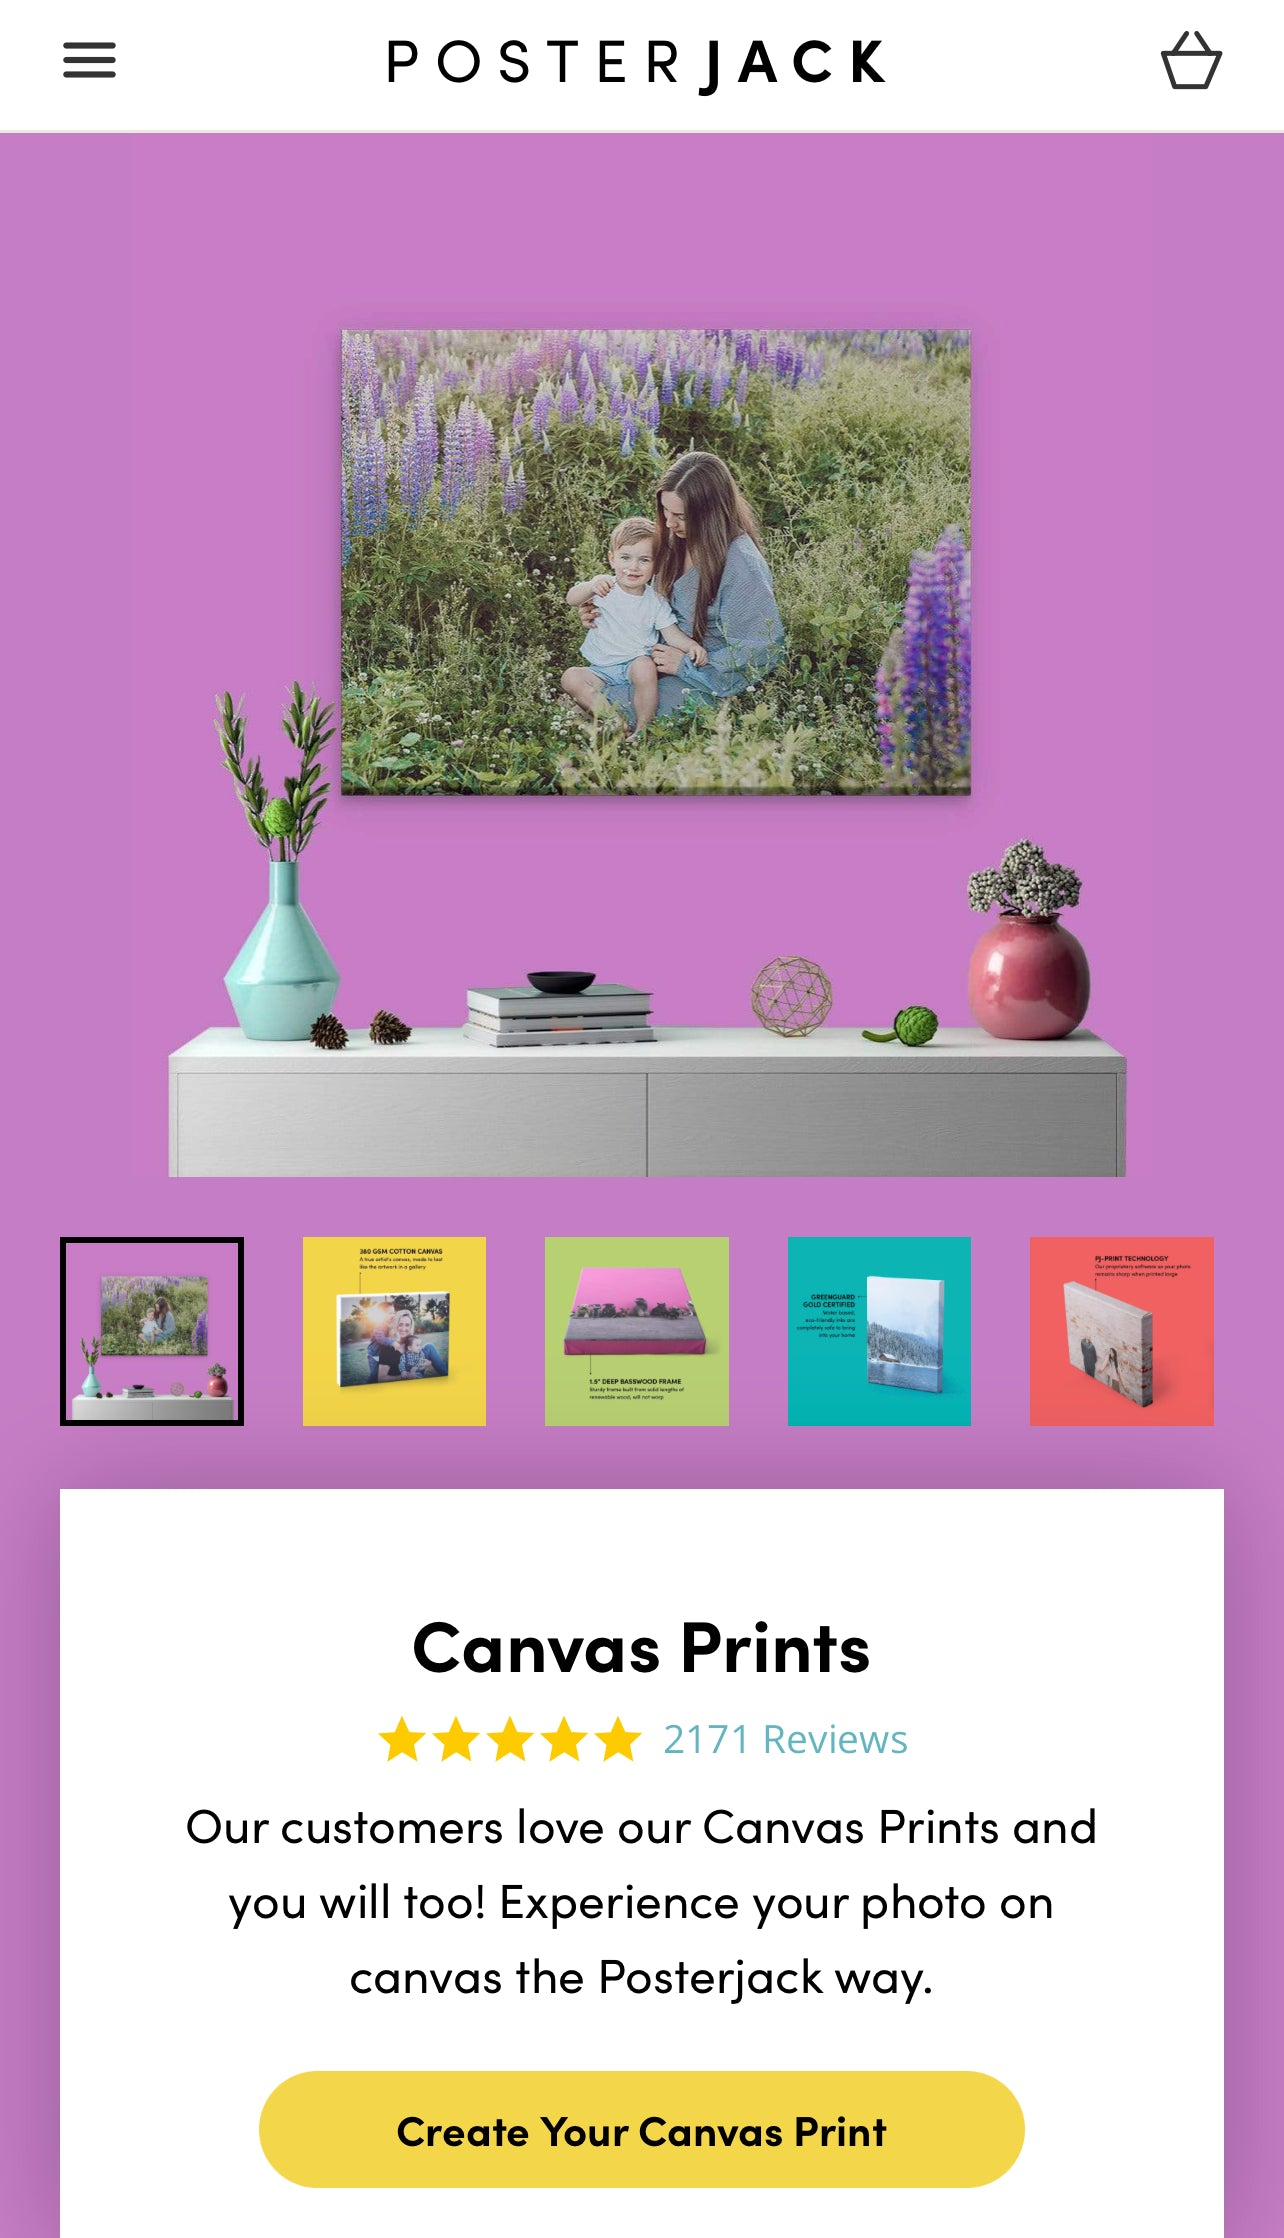 Guide to Printing a Phone Picture on Canvas - Step 1